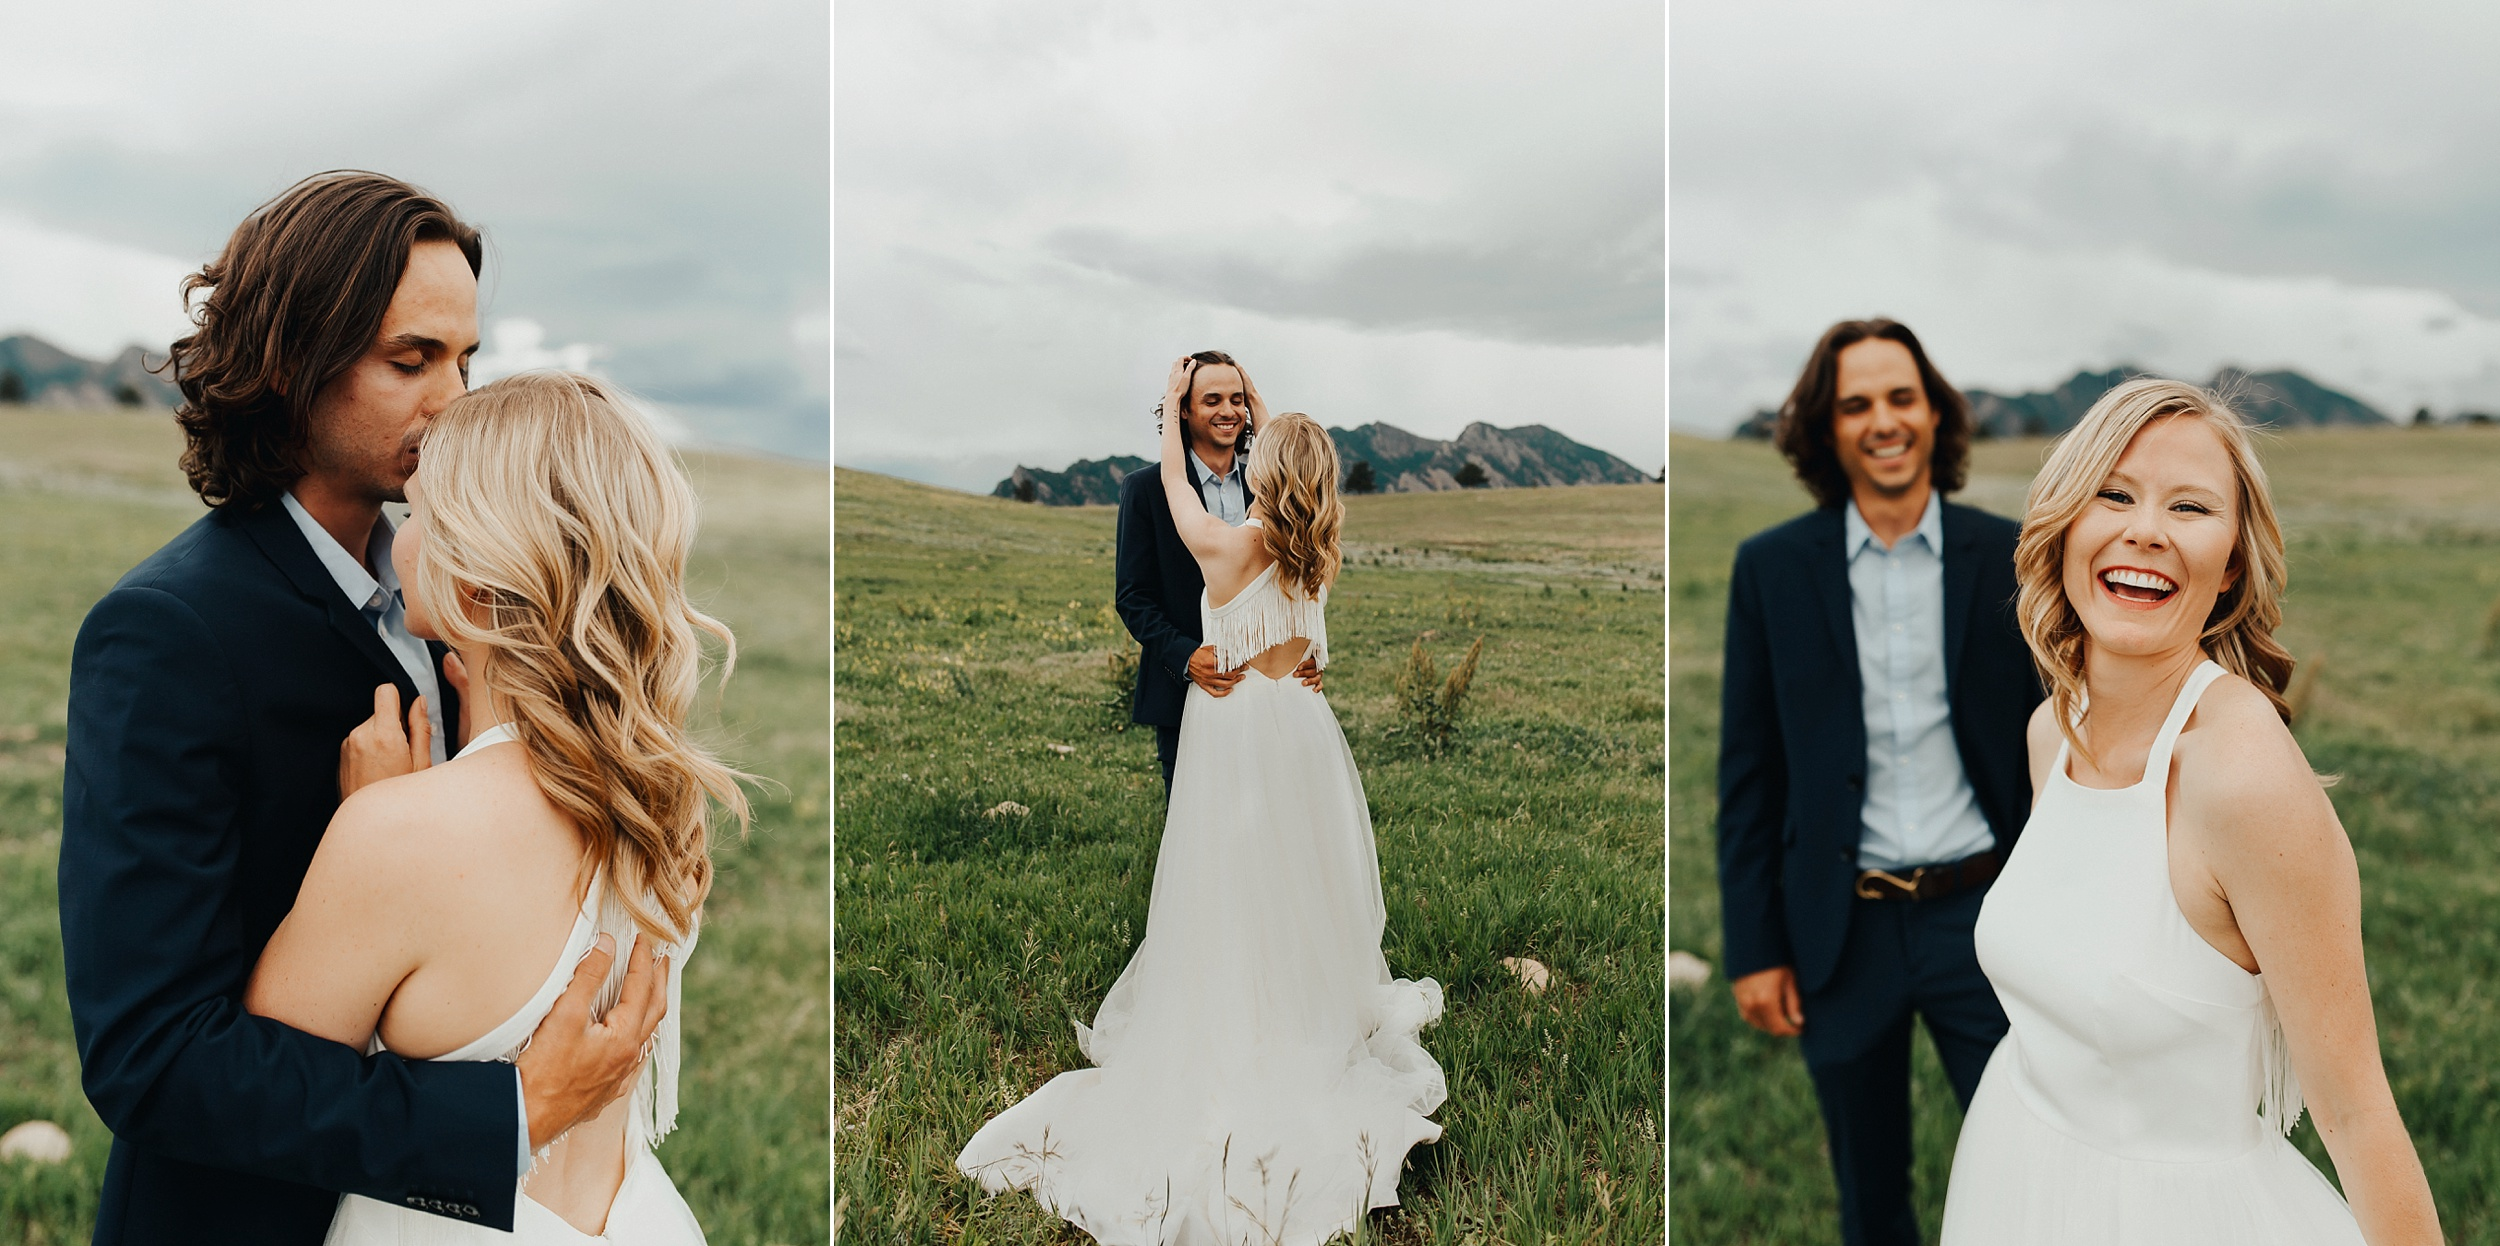 Boulder_Colorado_Elopement_Fringe_Boho_Mountains-6.jpg